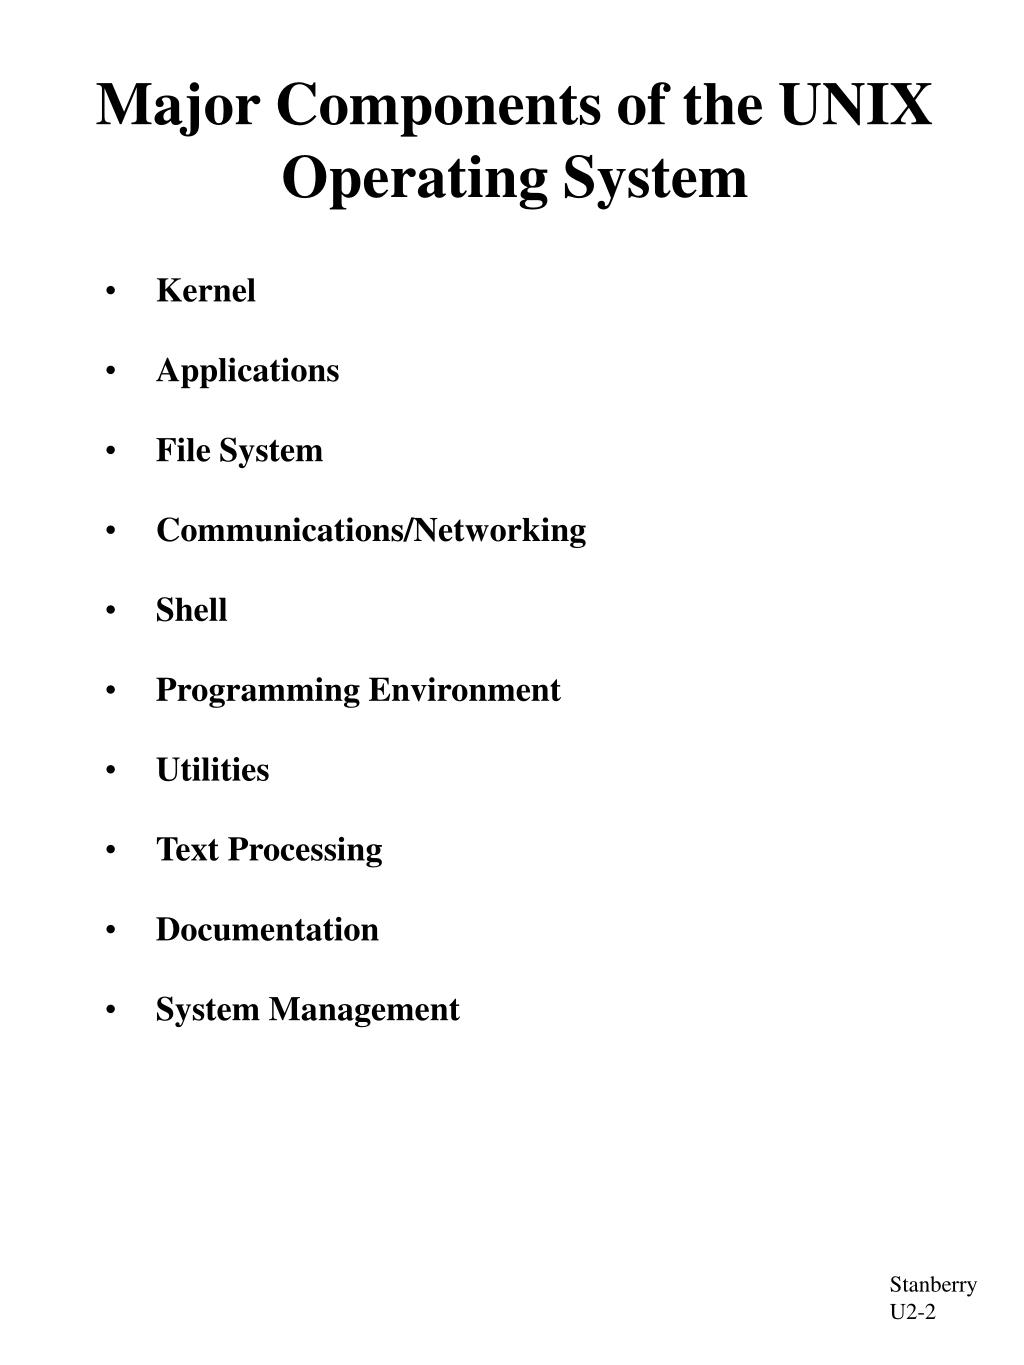 Major Components of the UNIX Operating System